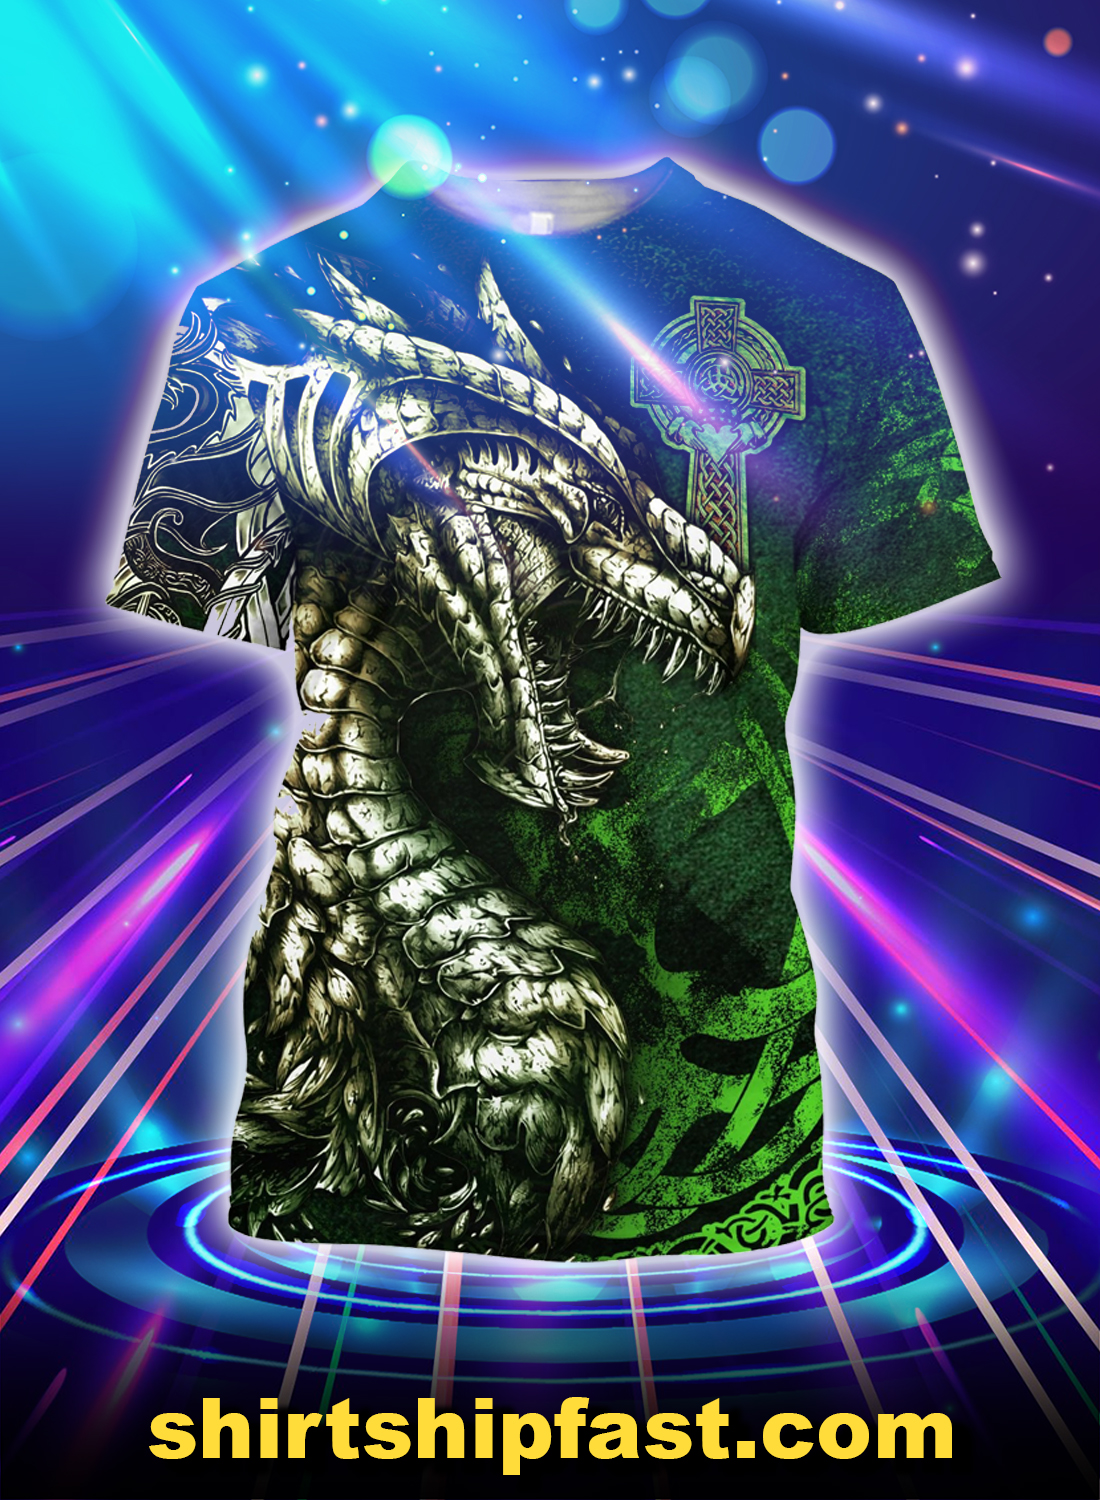 Celtic dragon tattoo 3d all over printed t-shirt